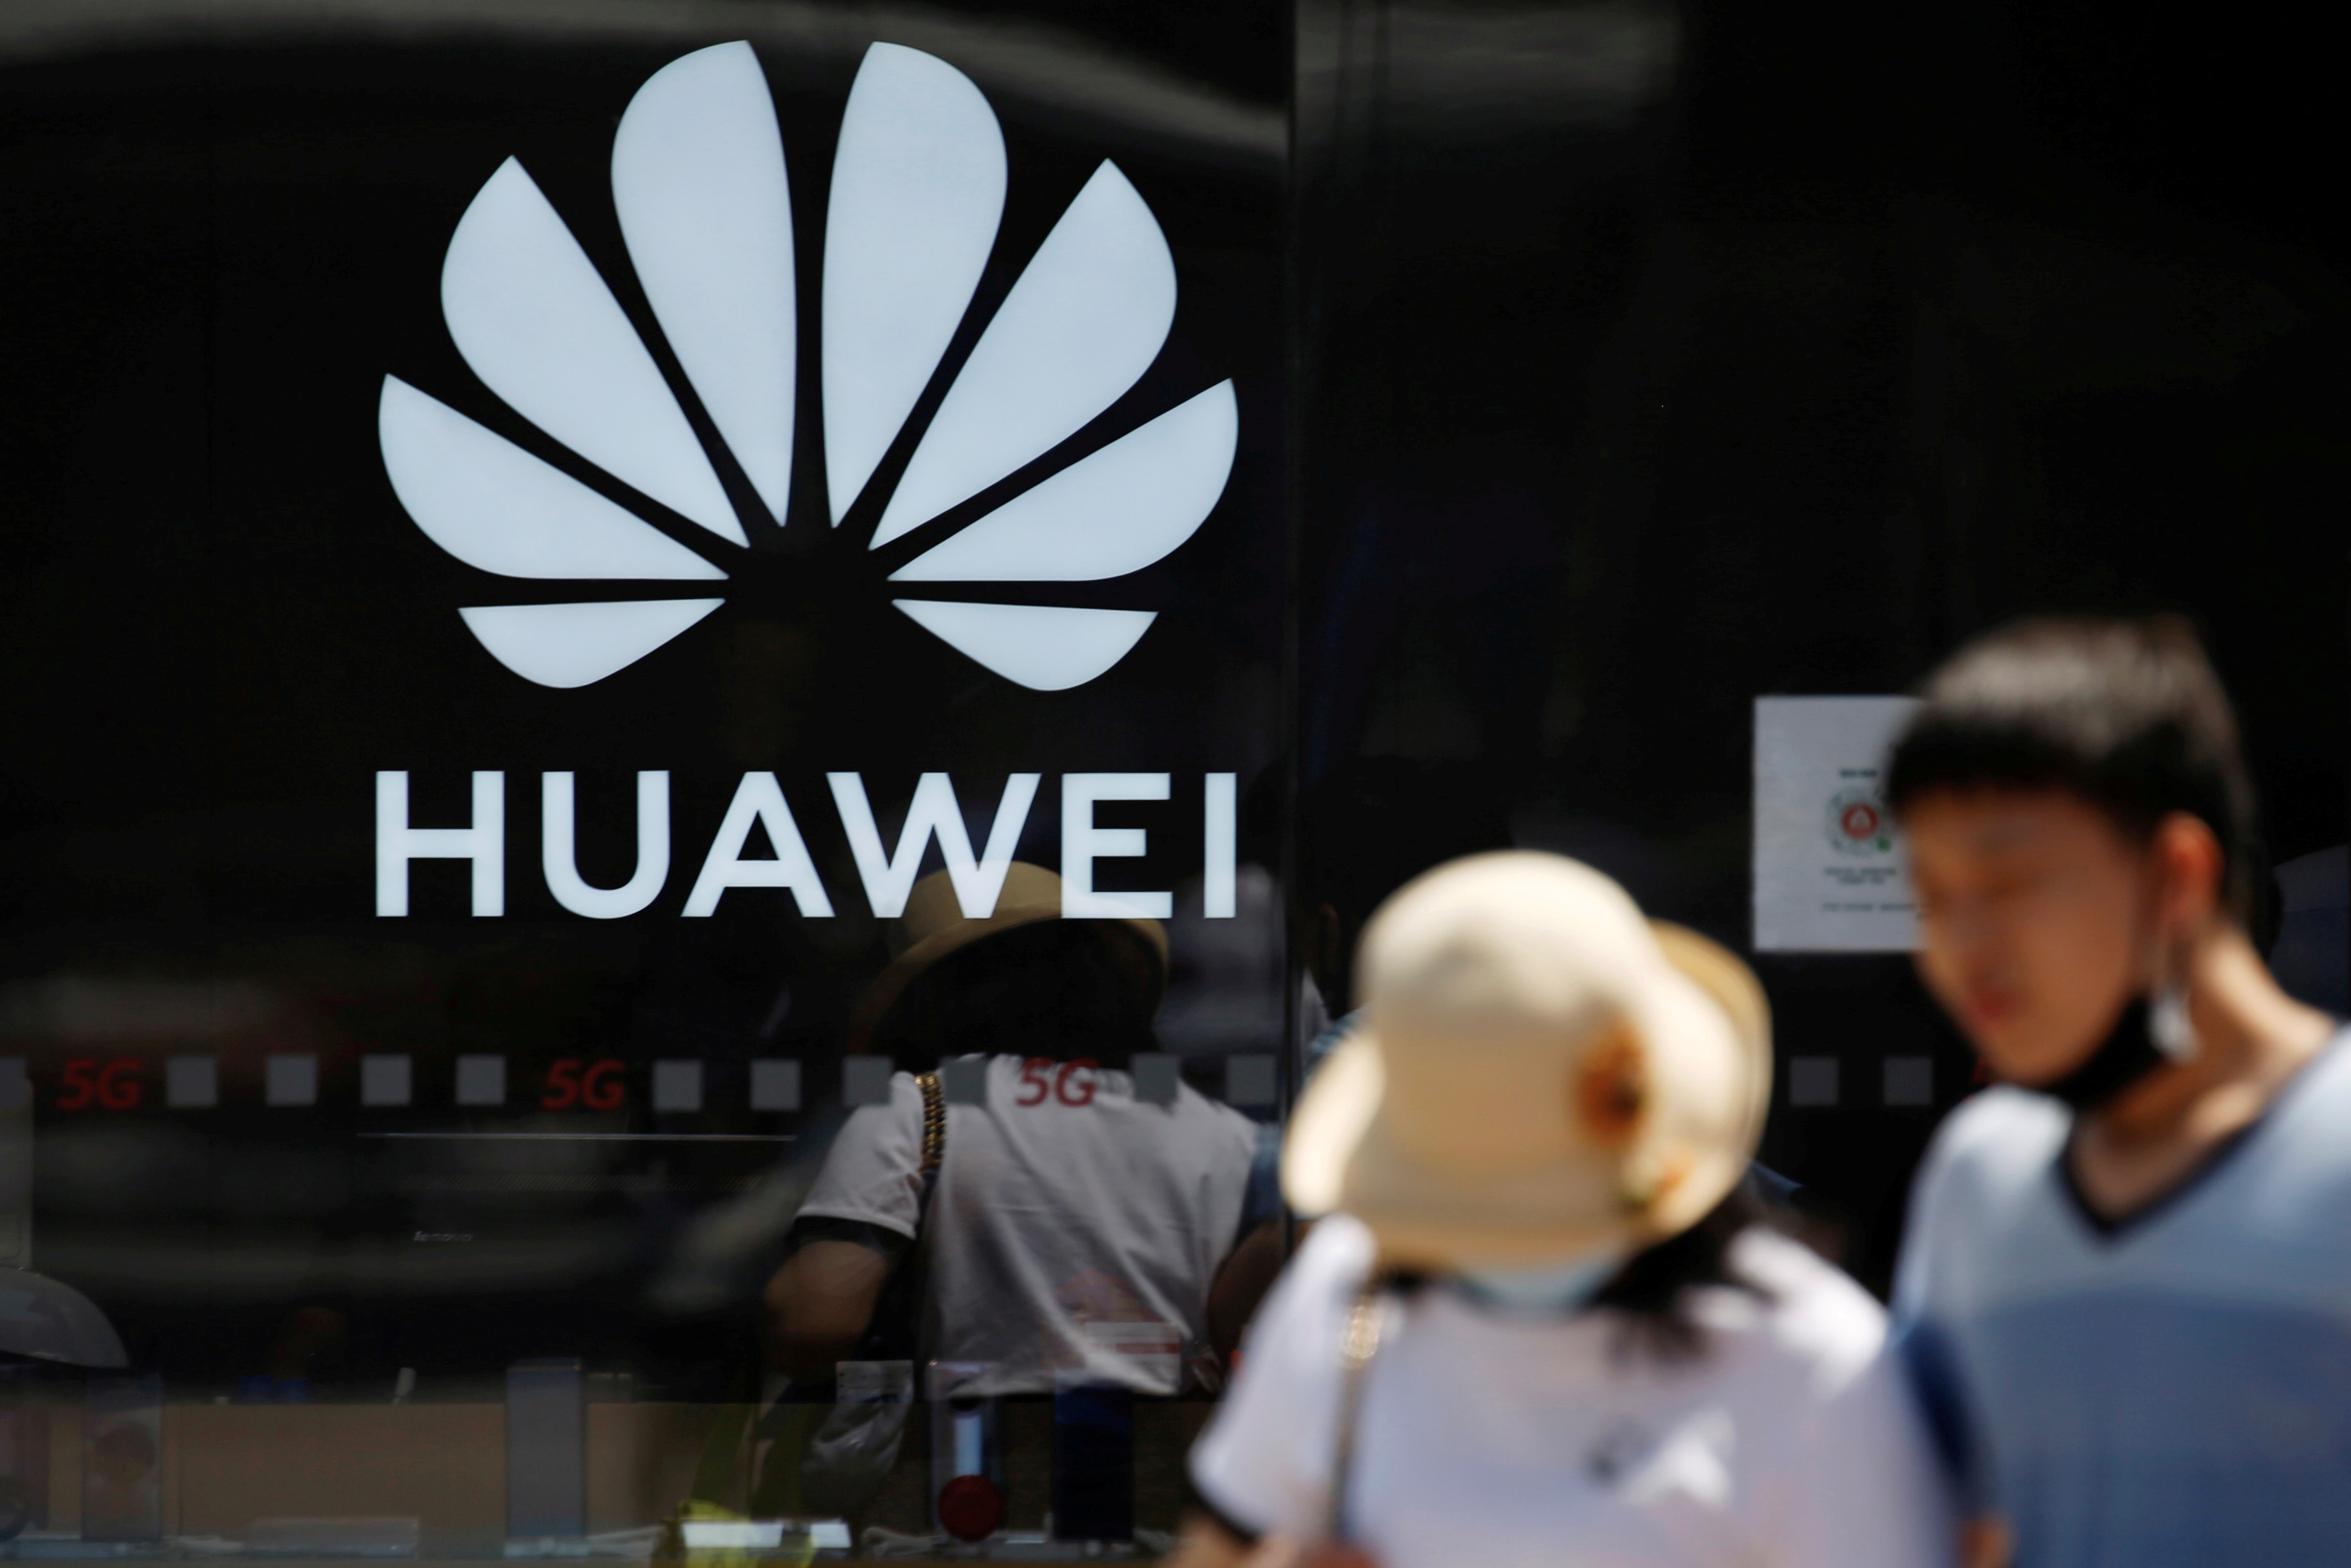 People walk past a Huawei logo on the facade of its store at a shopping complex in Beijing, China July 14, 2020. REUTERS/Tingshu Wang/File Photo